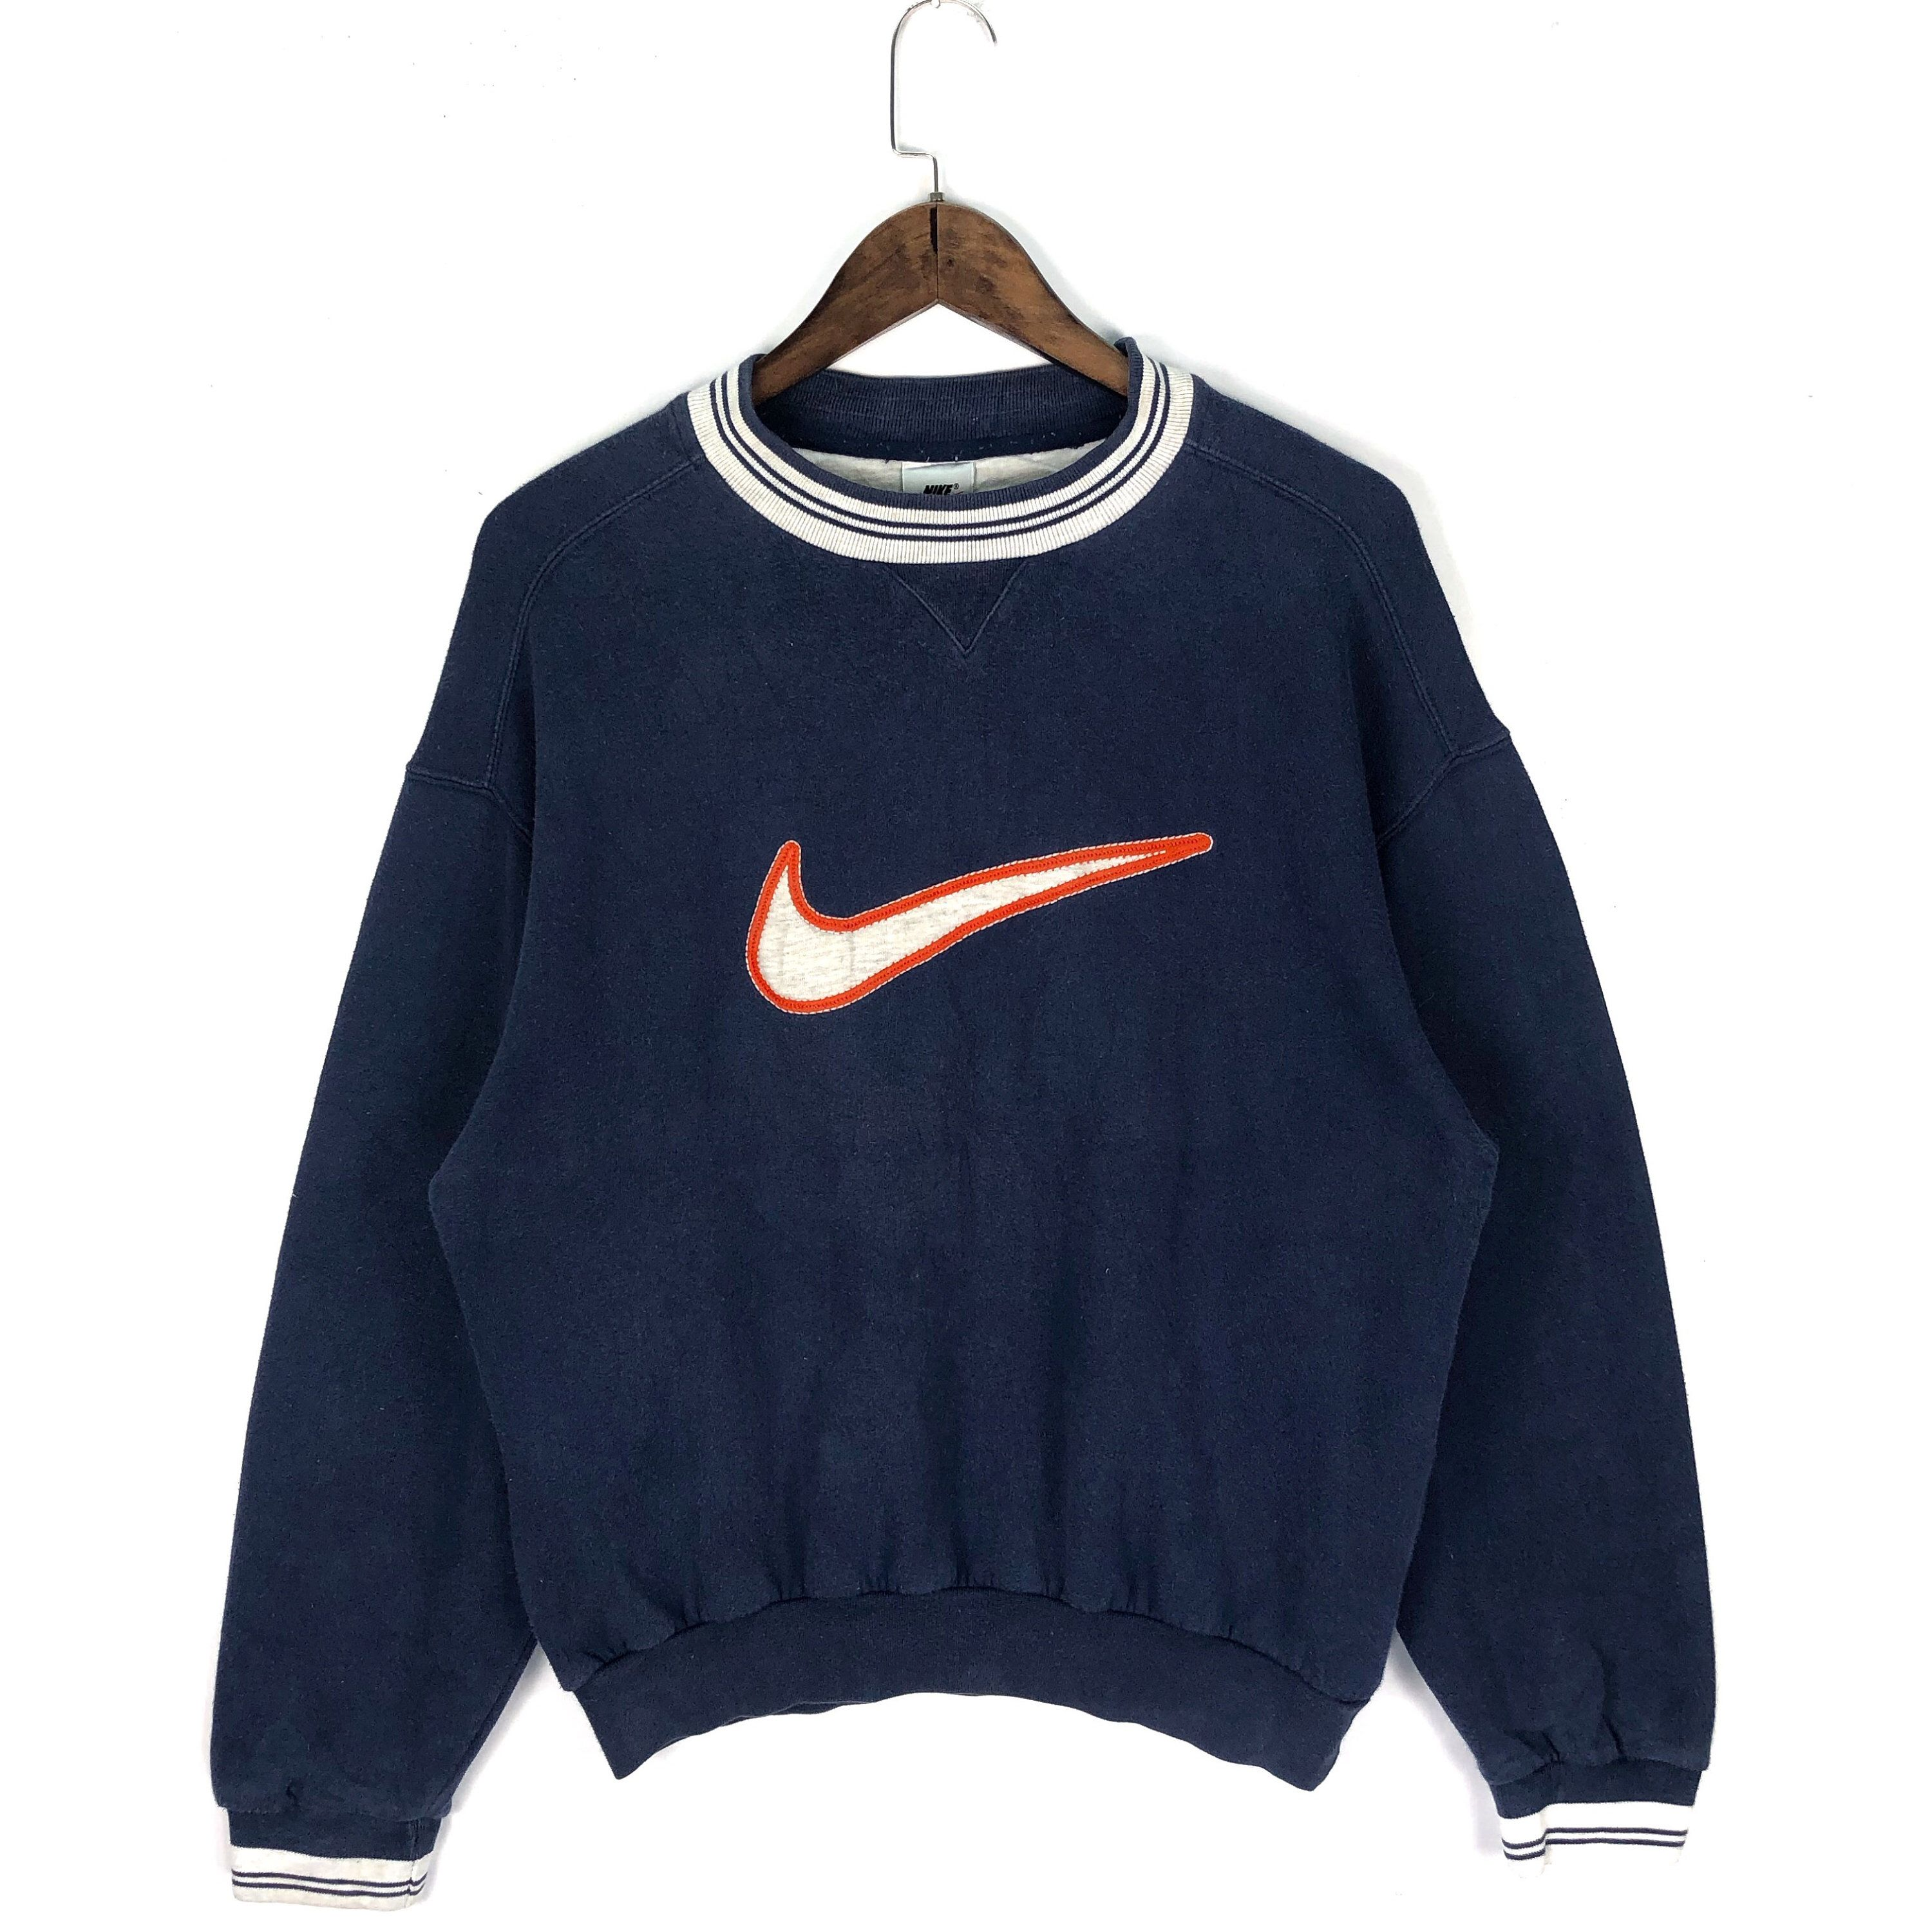 Excited To Share This Item From My Etsy Shop Vintage 90s Nike Swoosh Crewneck Sweatshirt Big Logo Embroidery M Vintage Outfits Sweatshirts Sweatshirt Website [ 3000 x 3000 Pixel ]